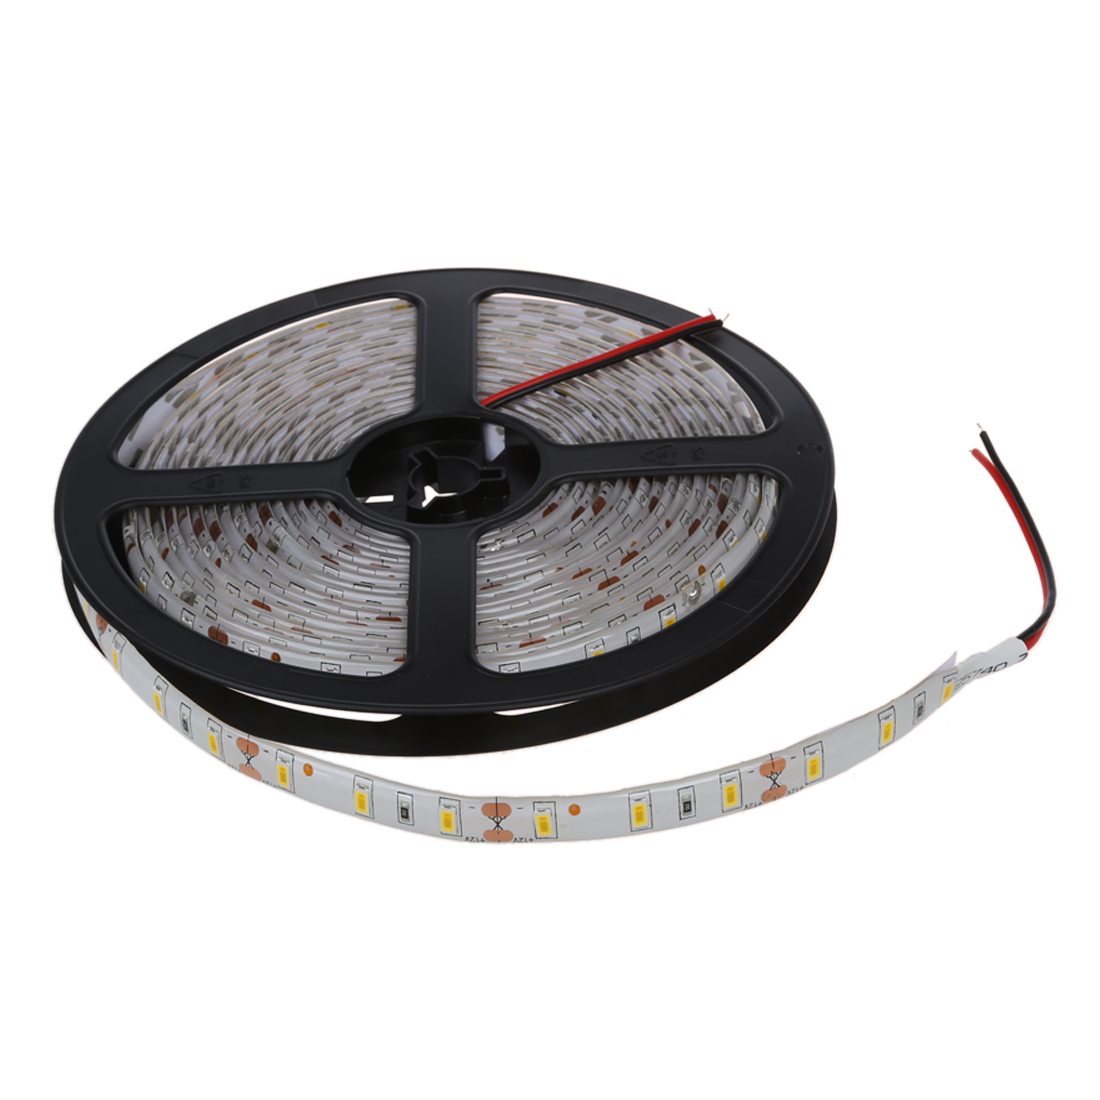 5m warmweiss smd 5630 led 300 strip streifen leiste flex licht band farbwe v1n5 ebay. Black Bedroom Furniture Sets. Home Design Ideas